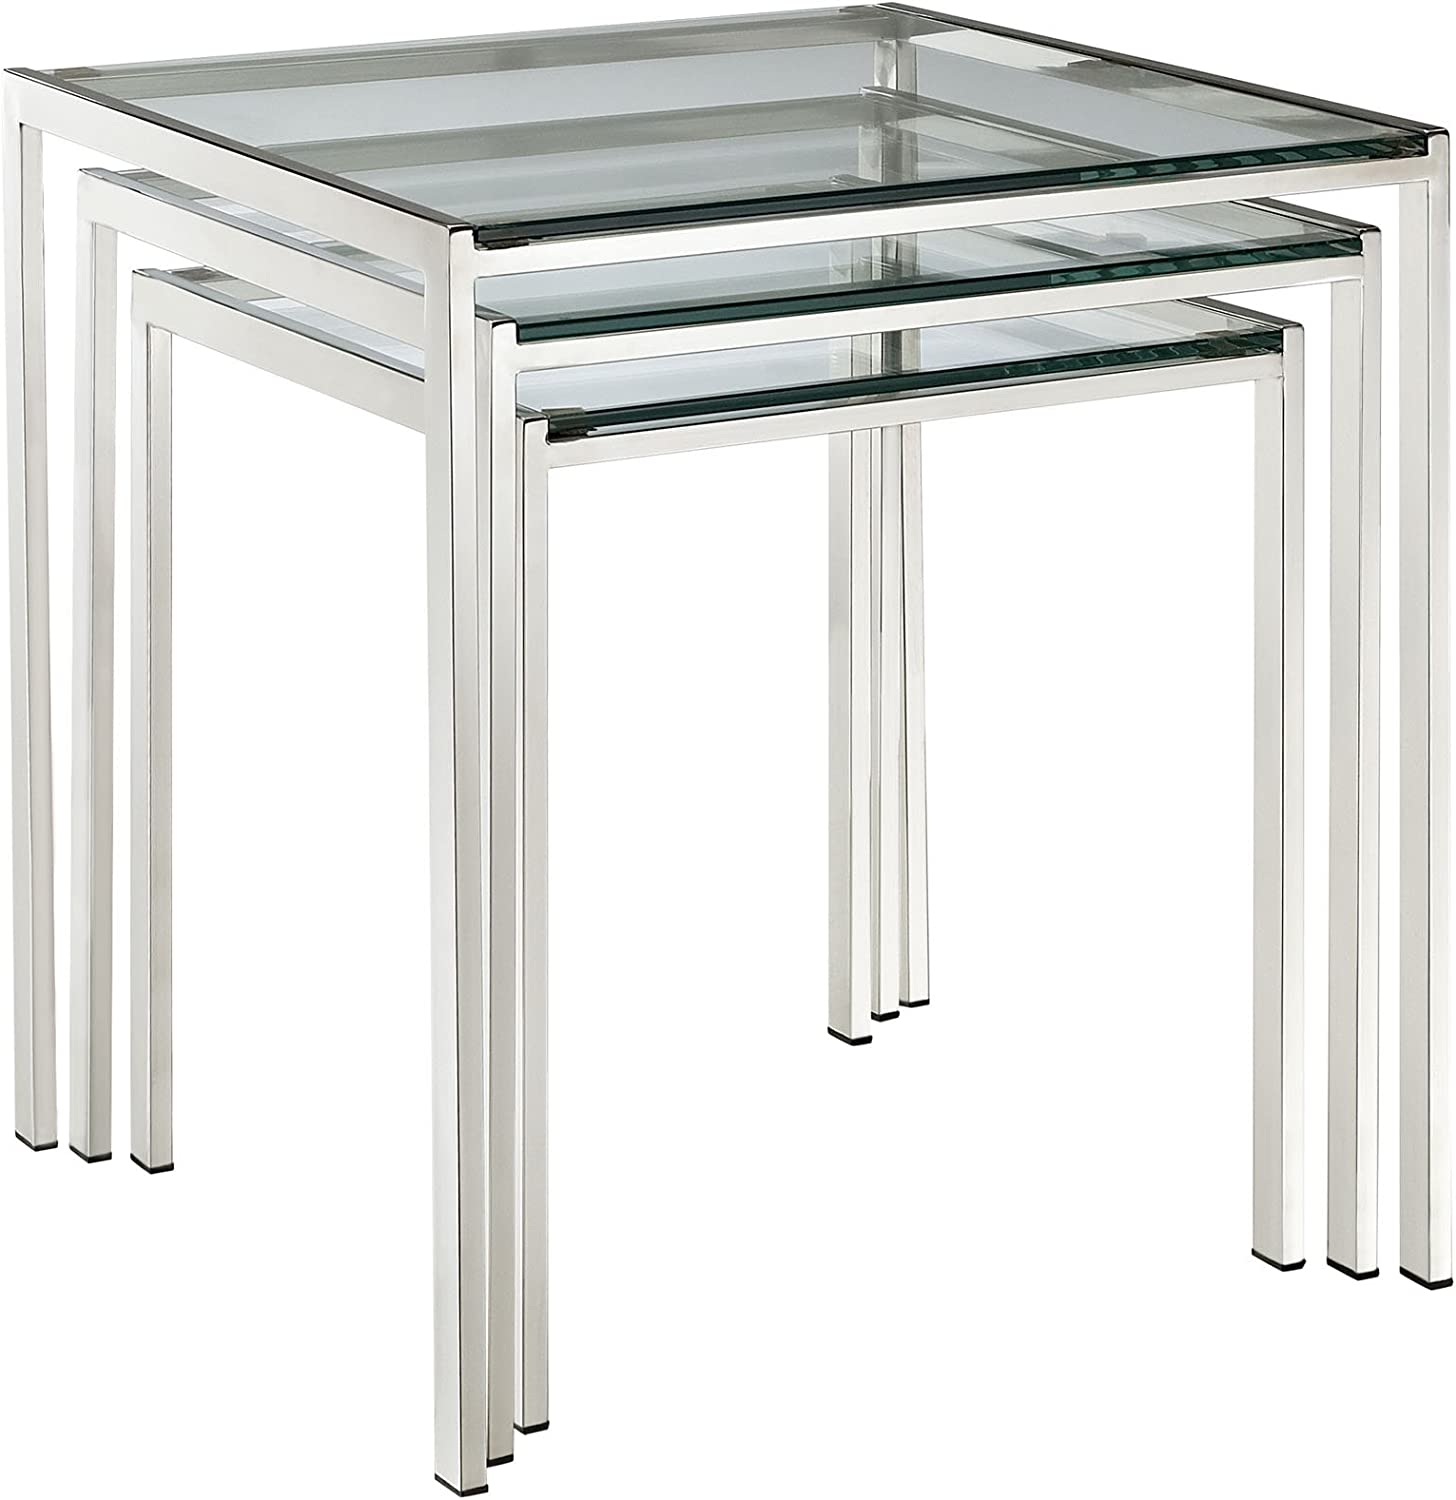 Modway Nimble Glass And Stainless Steel 3 Piece Side Nesting Table Set In Silver Furniture Decor